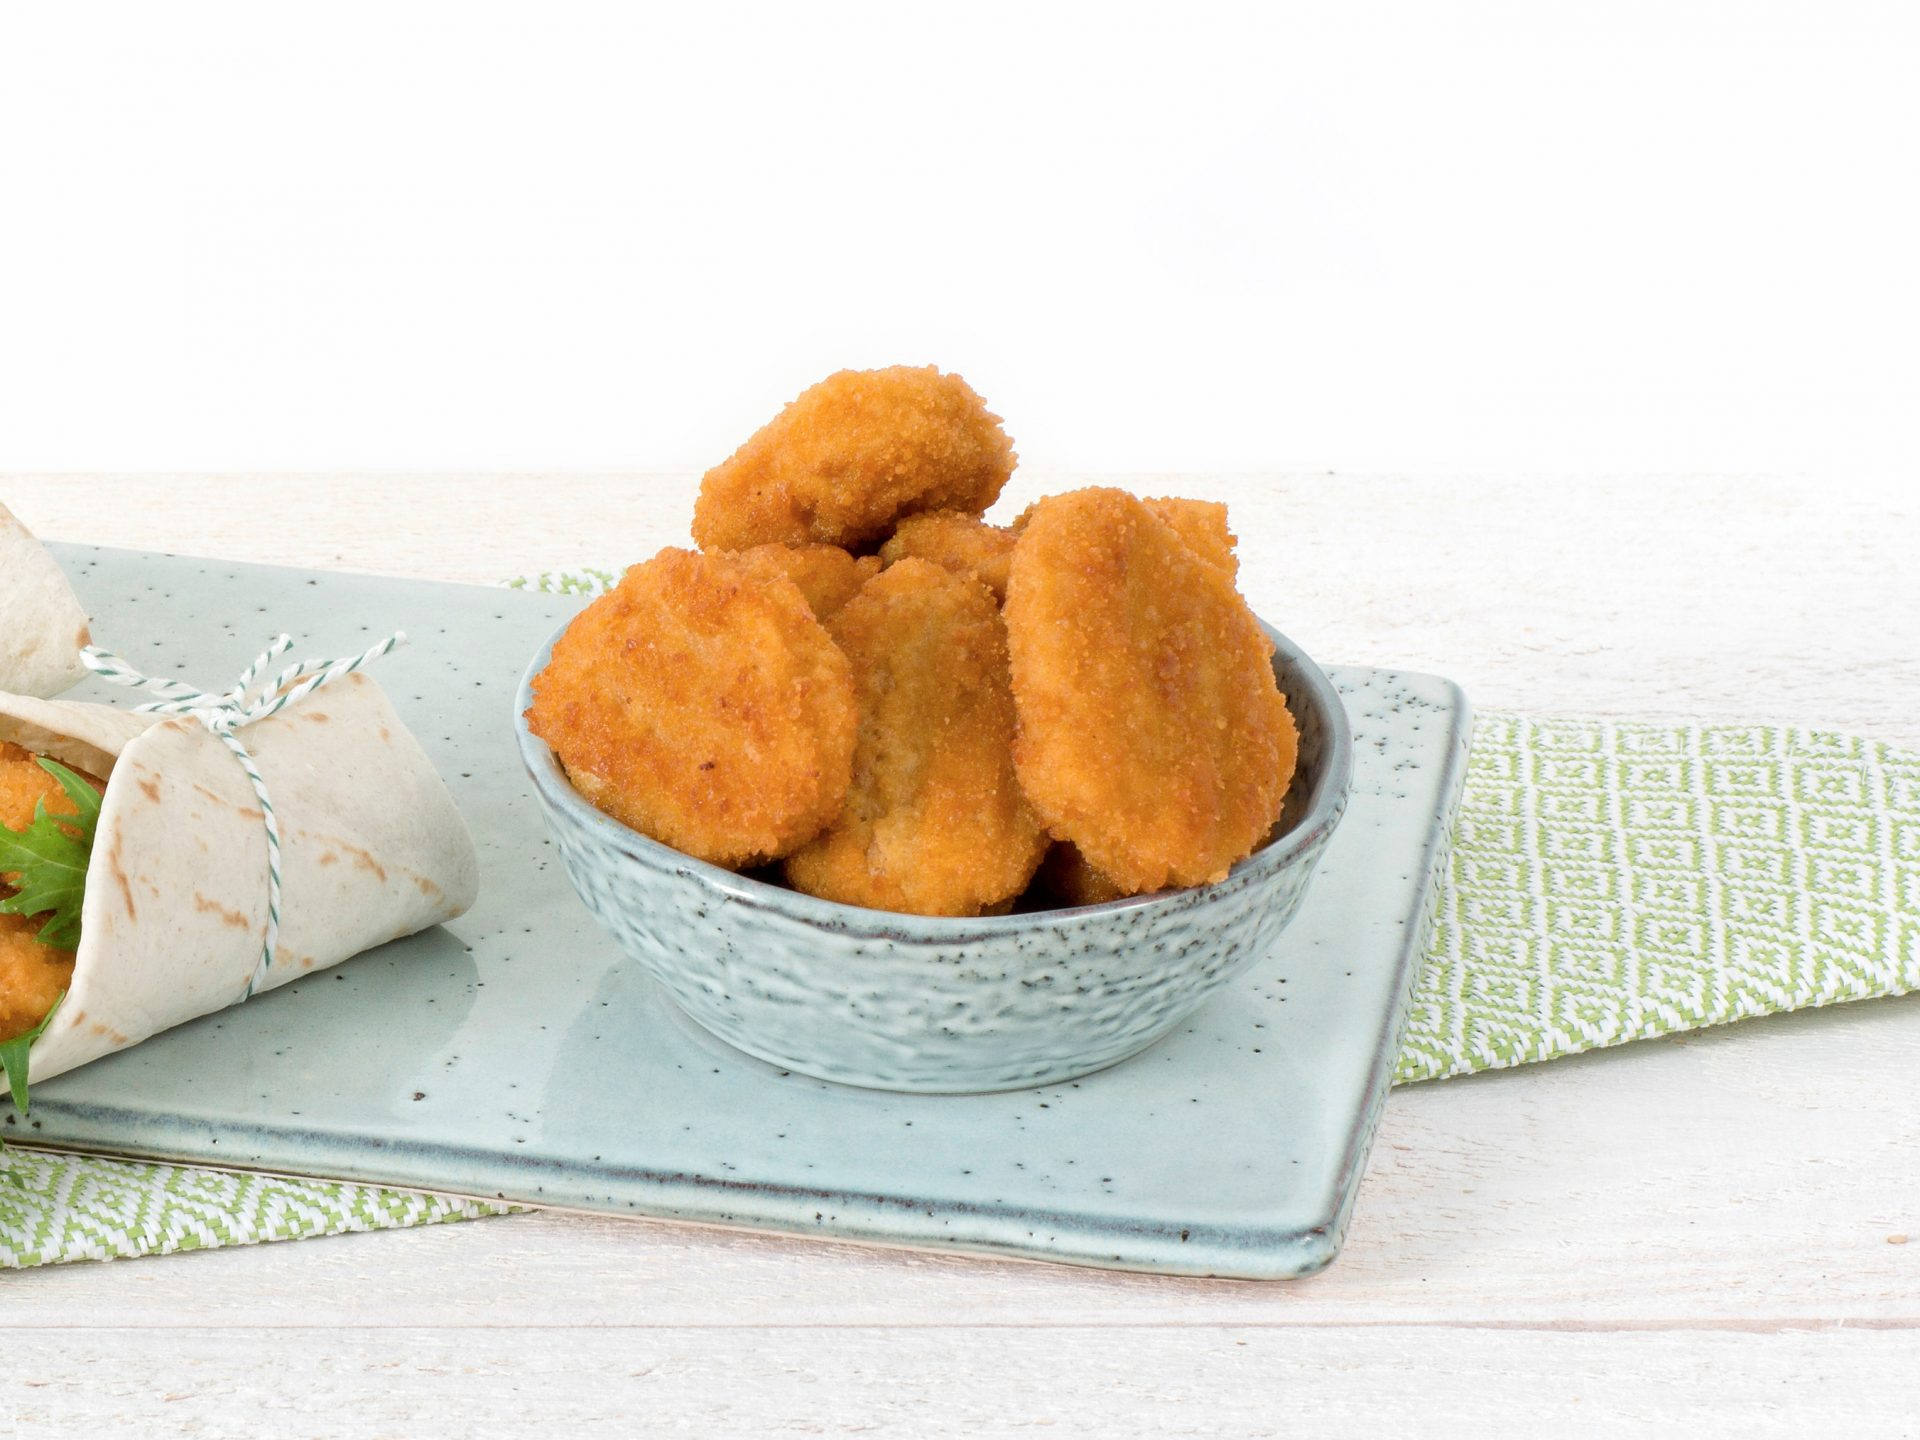 Meat substitute: Vegetarian Nugget